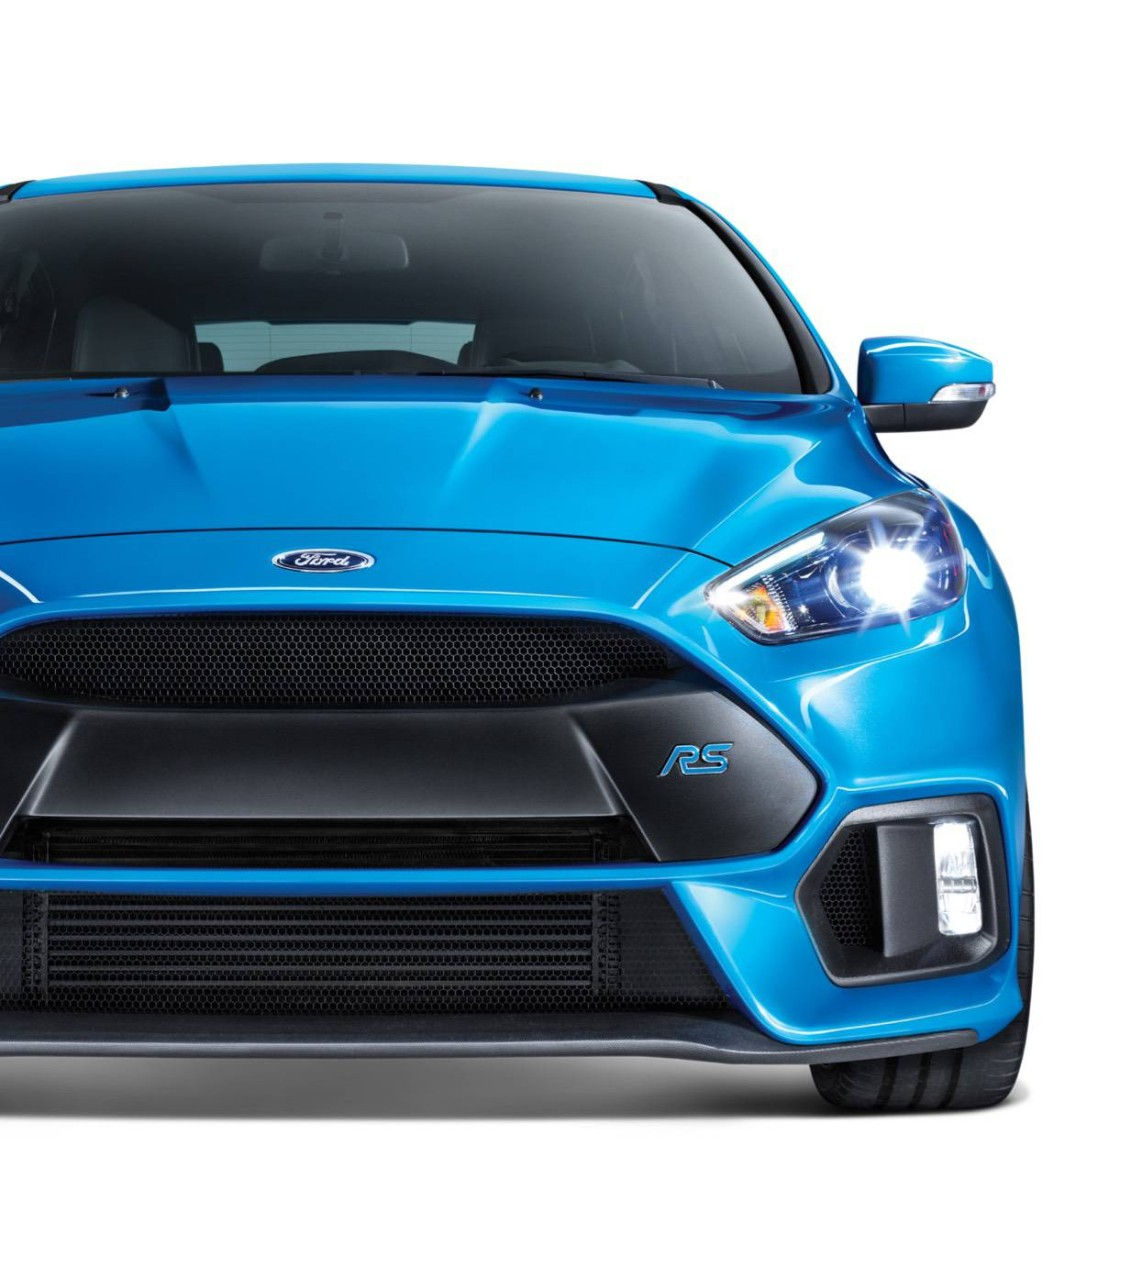 2017 ford focus rs is a hot hatch that s full of fun and nothing like its boring sibling autos dallas news